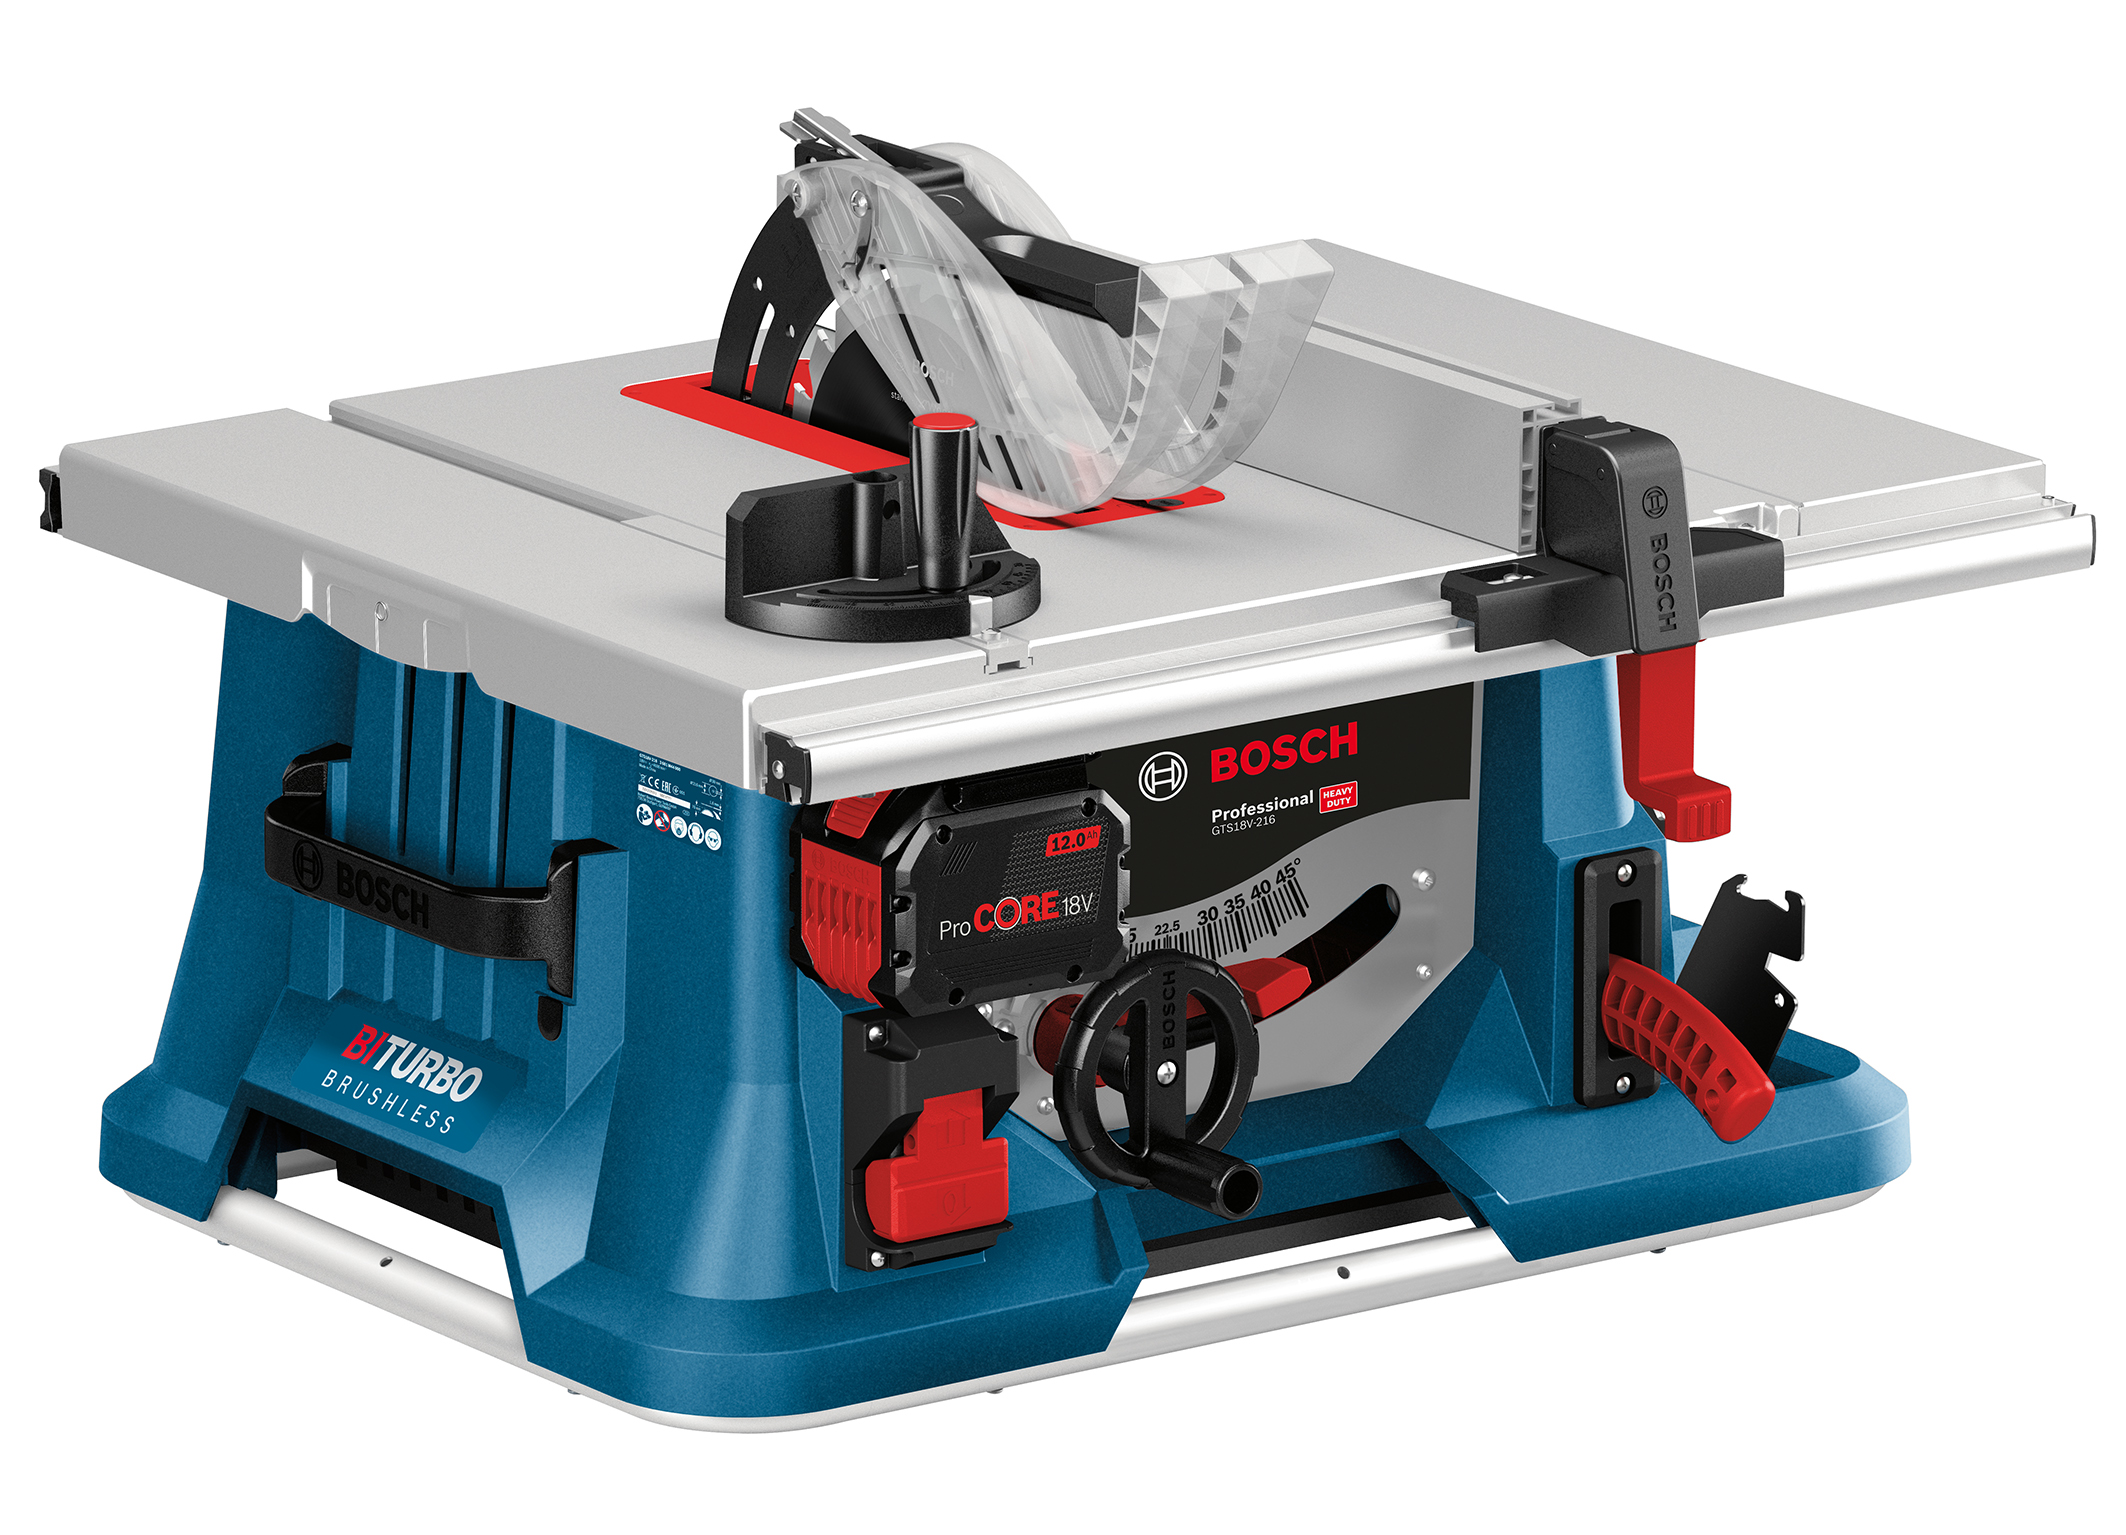 The first cordless table saw in the range: Biturbo table saw GTS 18V-216 Professional from Bosch for pros